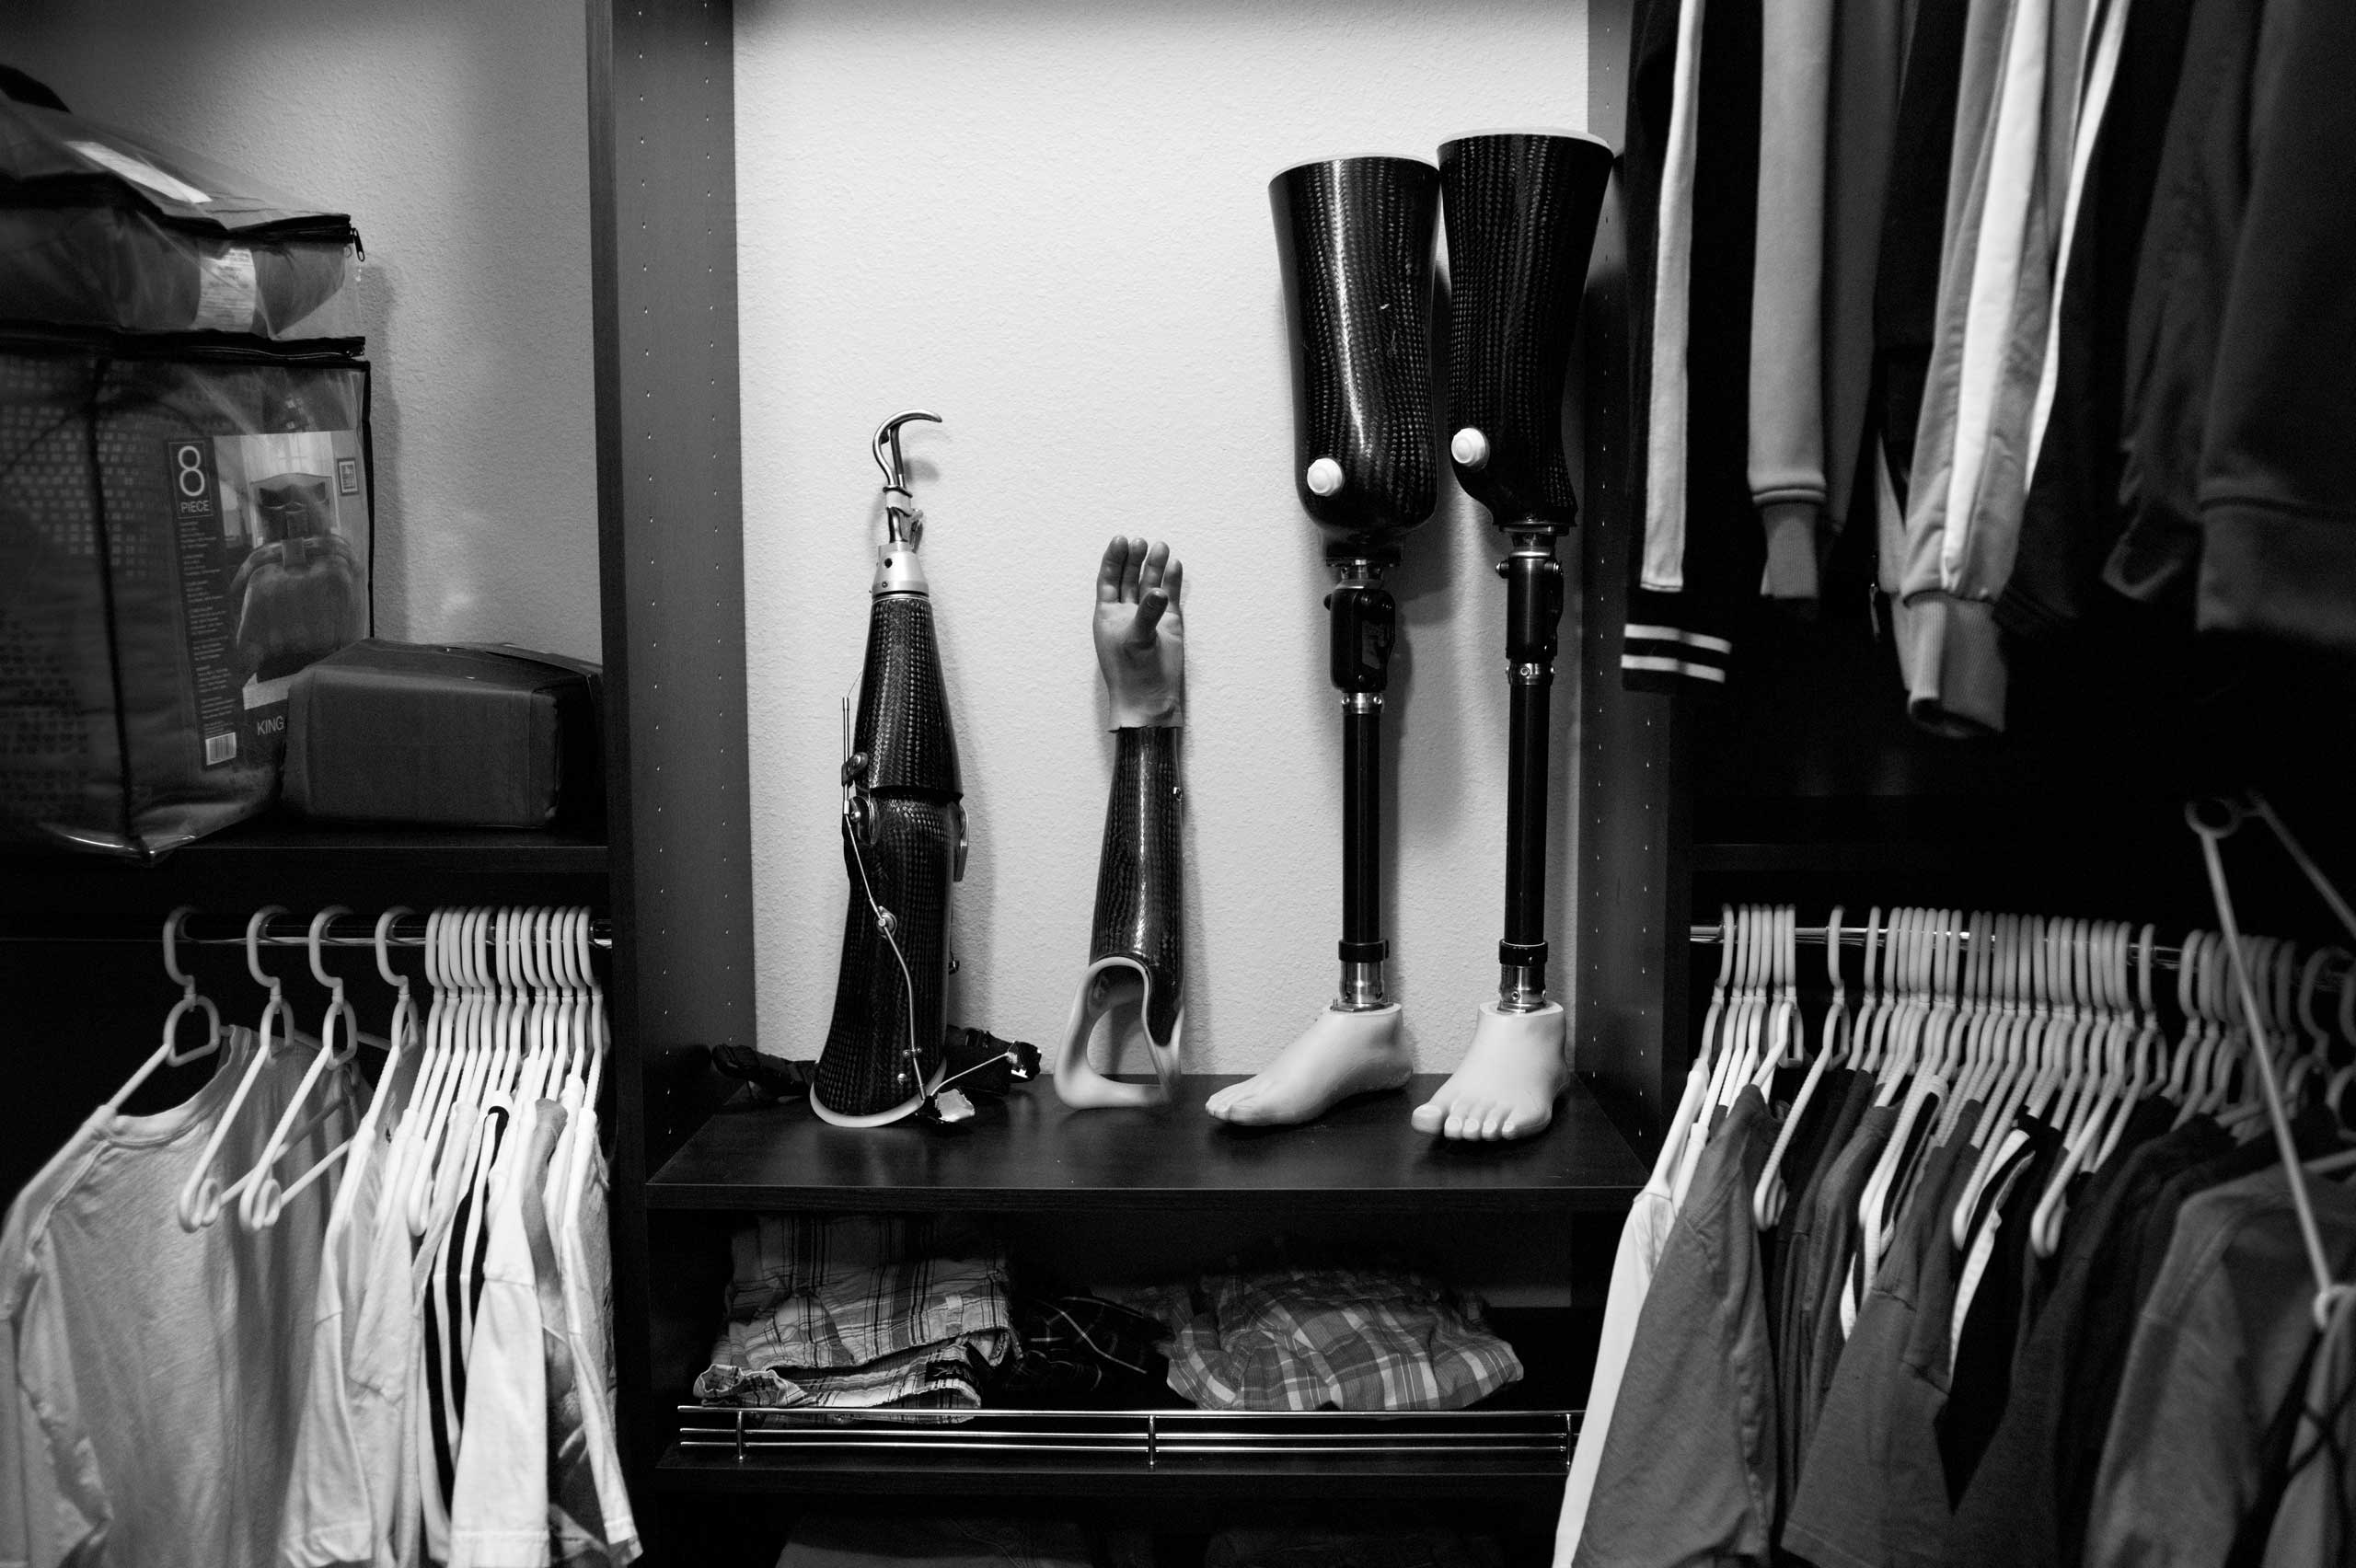 Nicely's store his prosthesis in his closet. He uses his artificial arms and legs interchangeably depending on his daily needs. Lake Ozark, Miss., 2014.